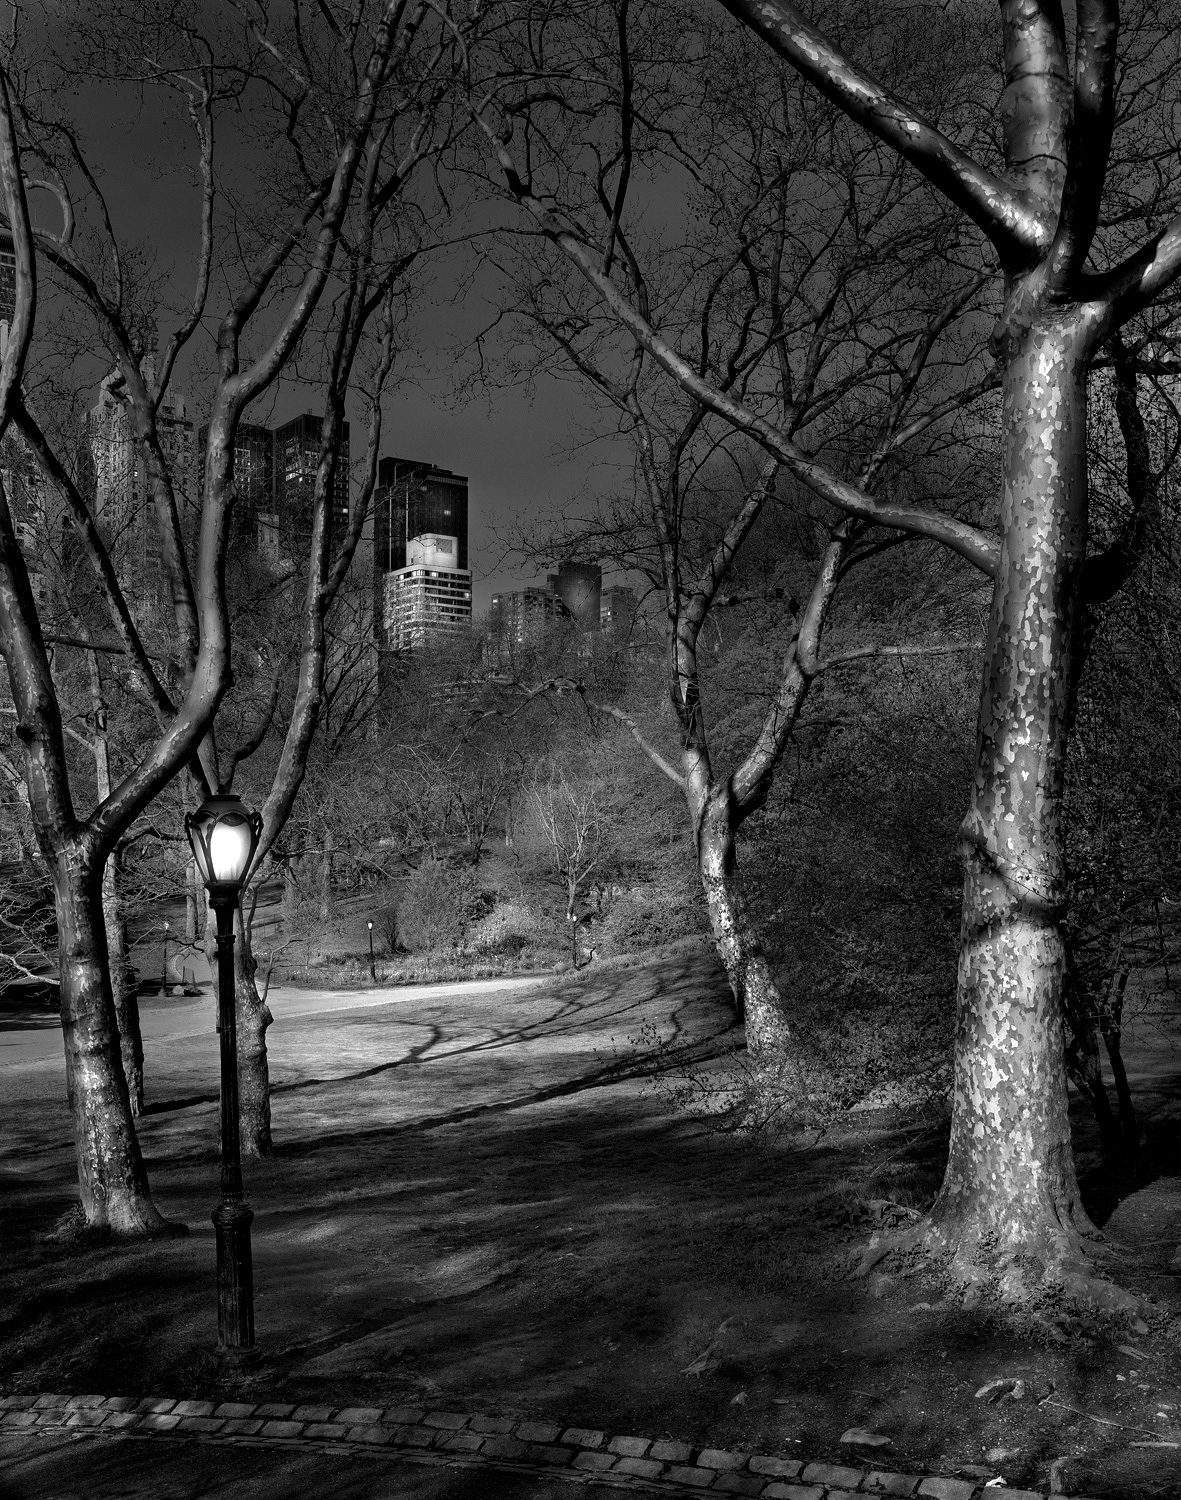 Deep in A Dream - Central Park - 4am London Plane Trees